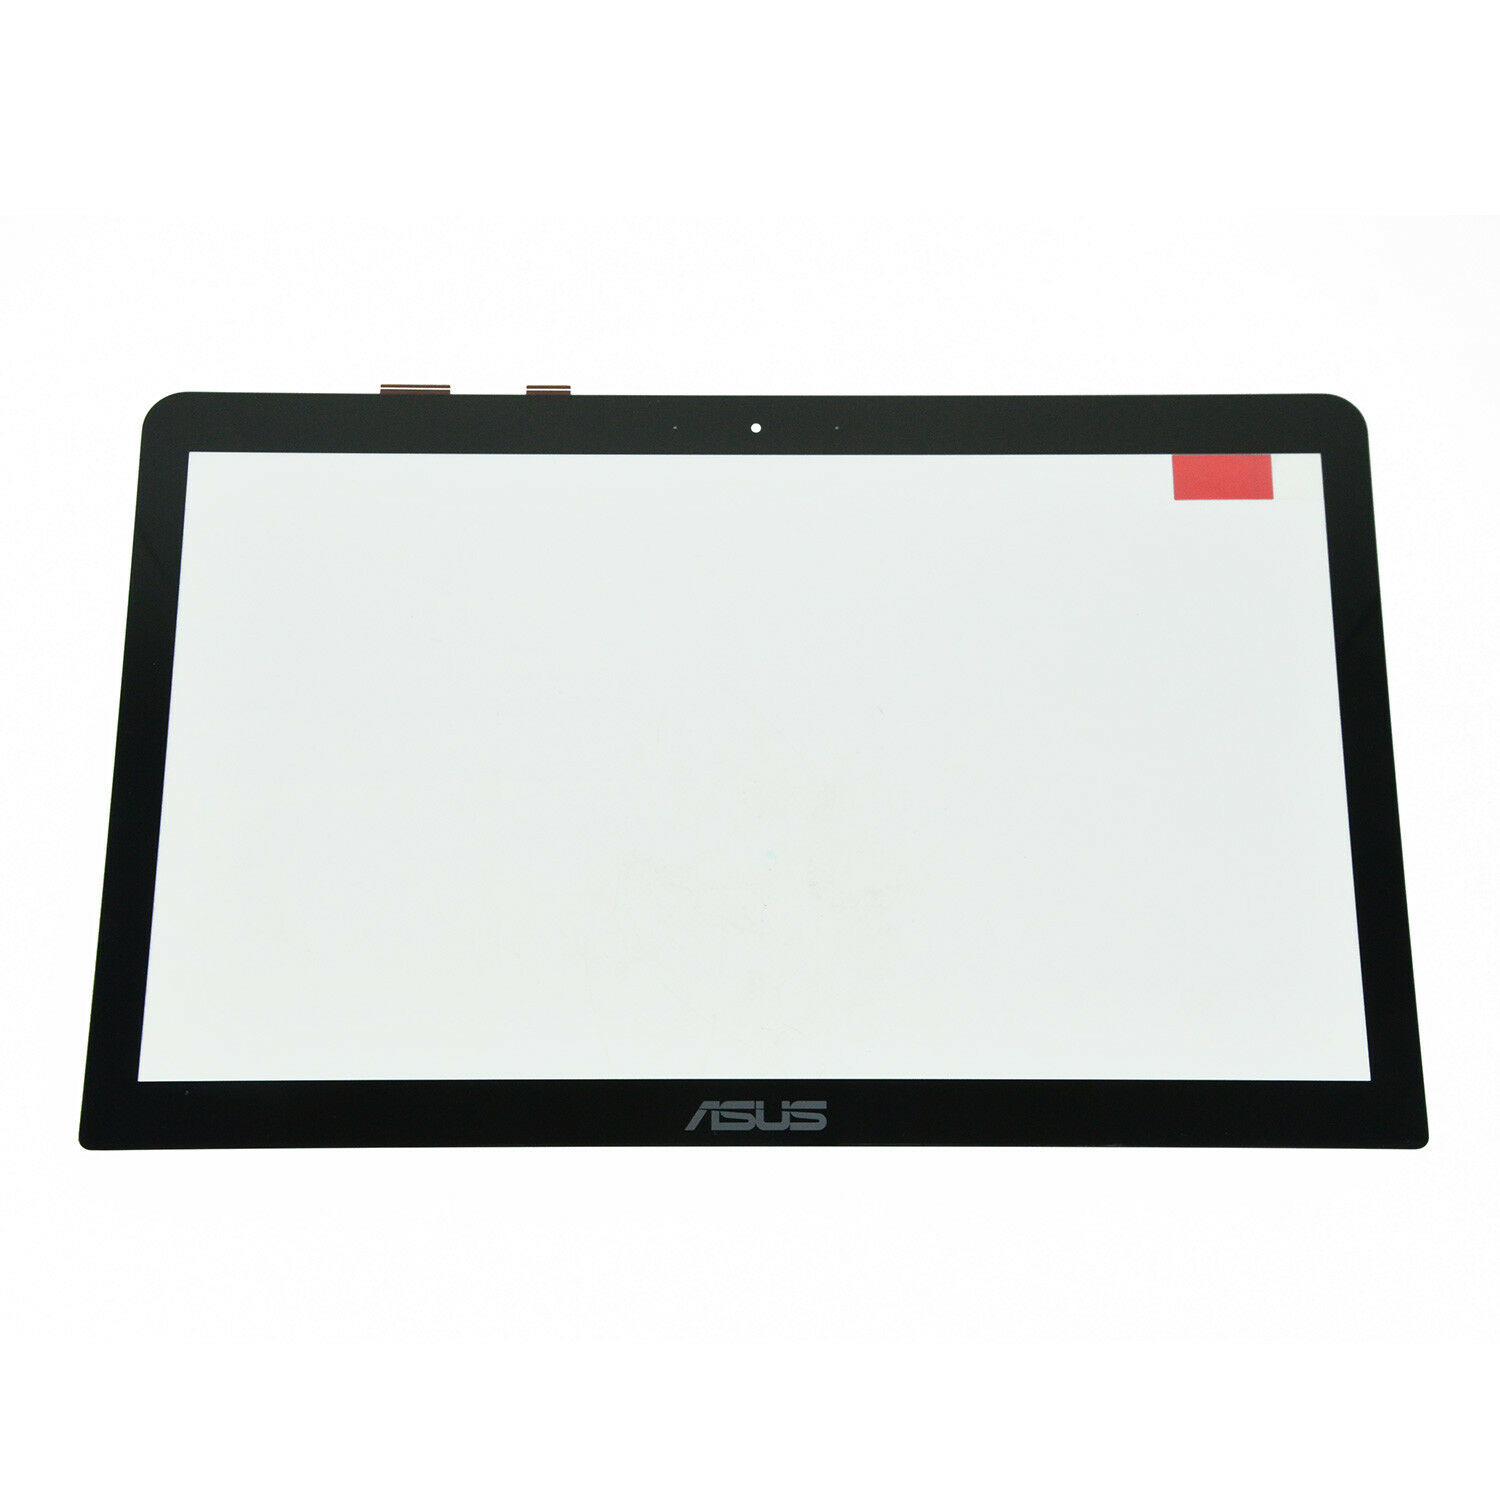 "15.6"" New for Asus Q503U Q503UA Q503UA-BHI5T16 Q503UA-BSI5T17 Touch Screen Digitizer Glass 47-6040406"